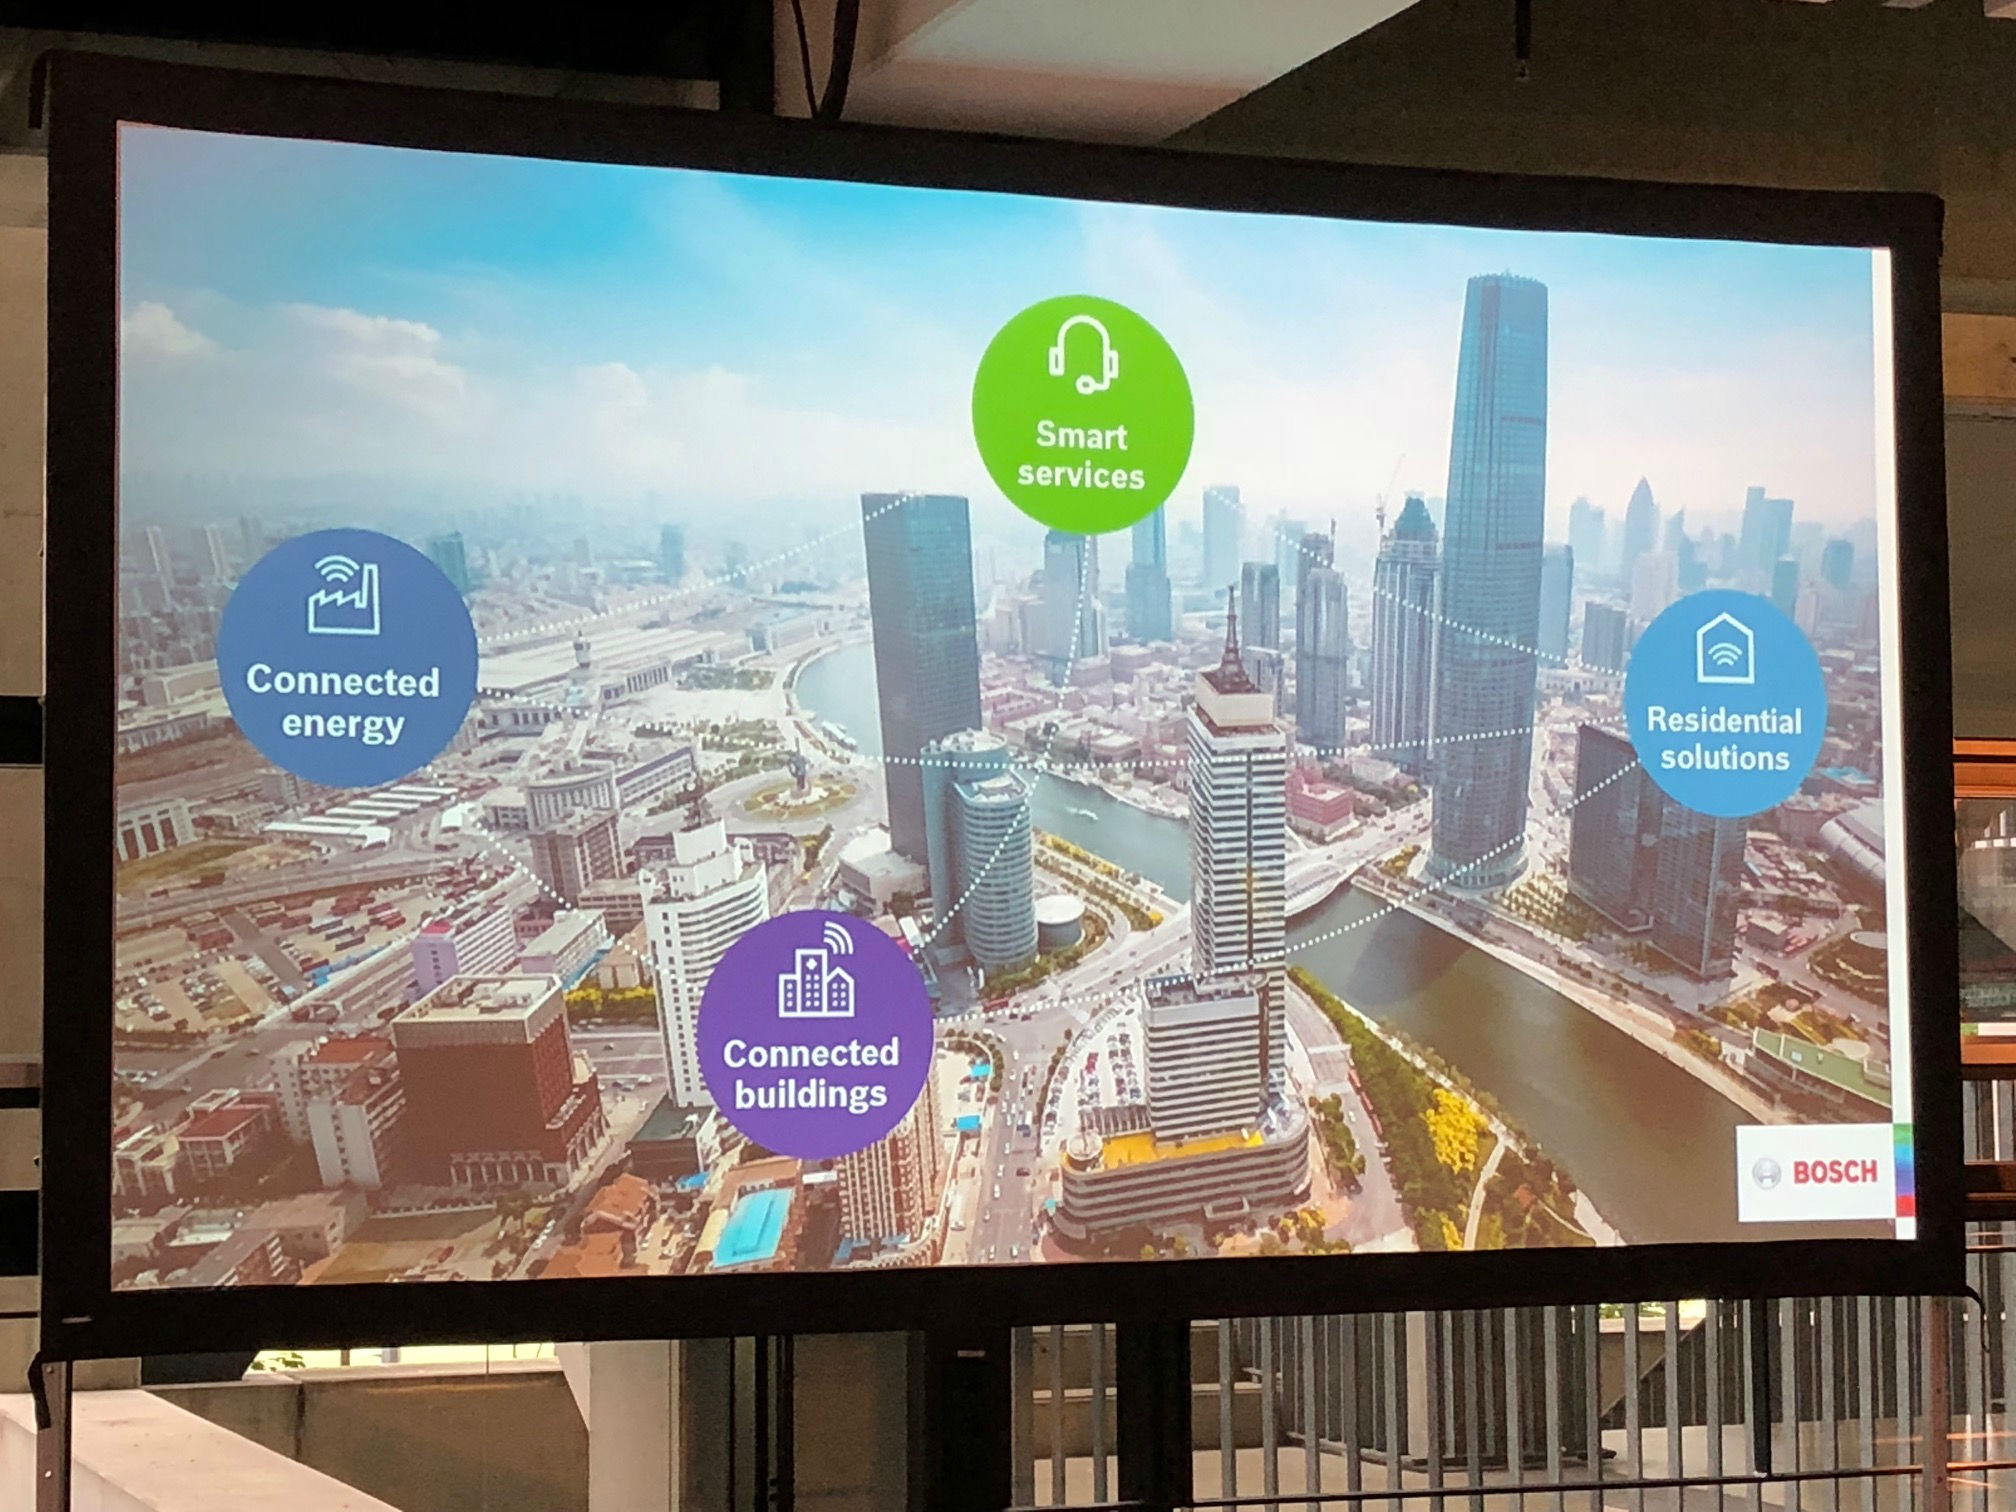 Bosch Smart cities Cologne 2017